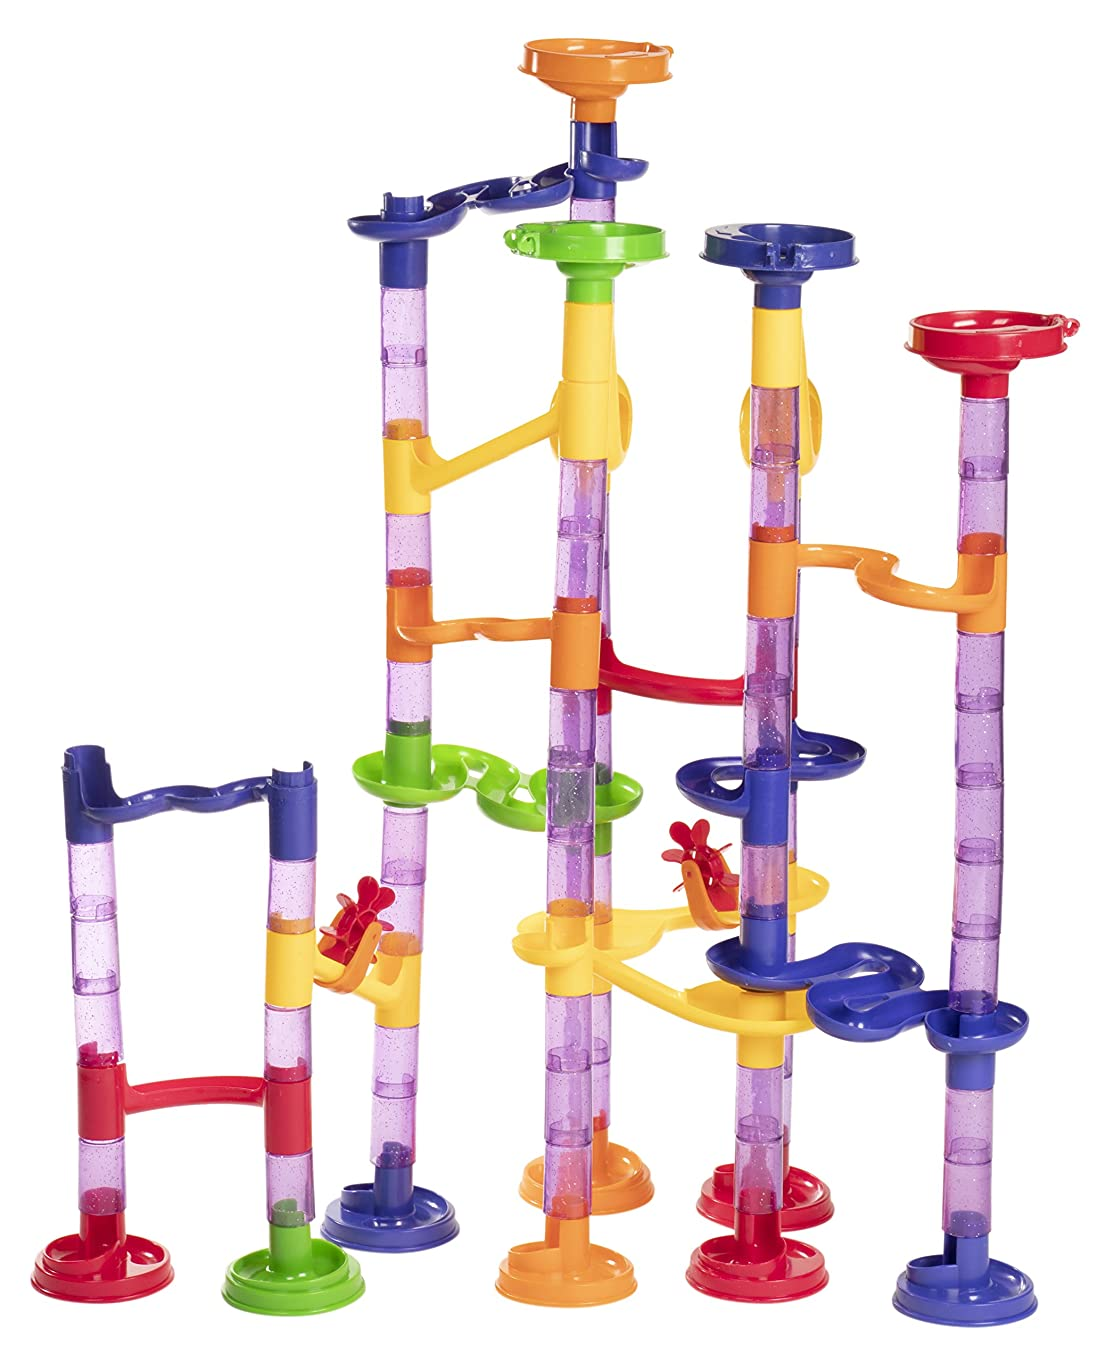 Marble Run Play Set - 150-Piece Marble Track Game, Educational Construction Building Blocks Toy for Kids